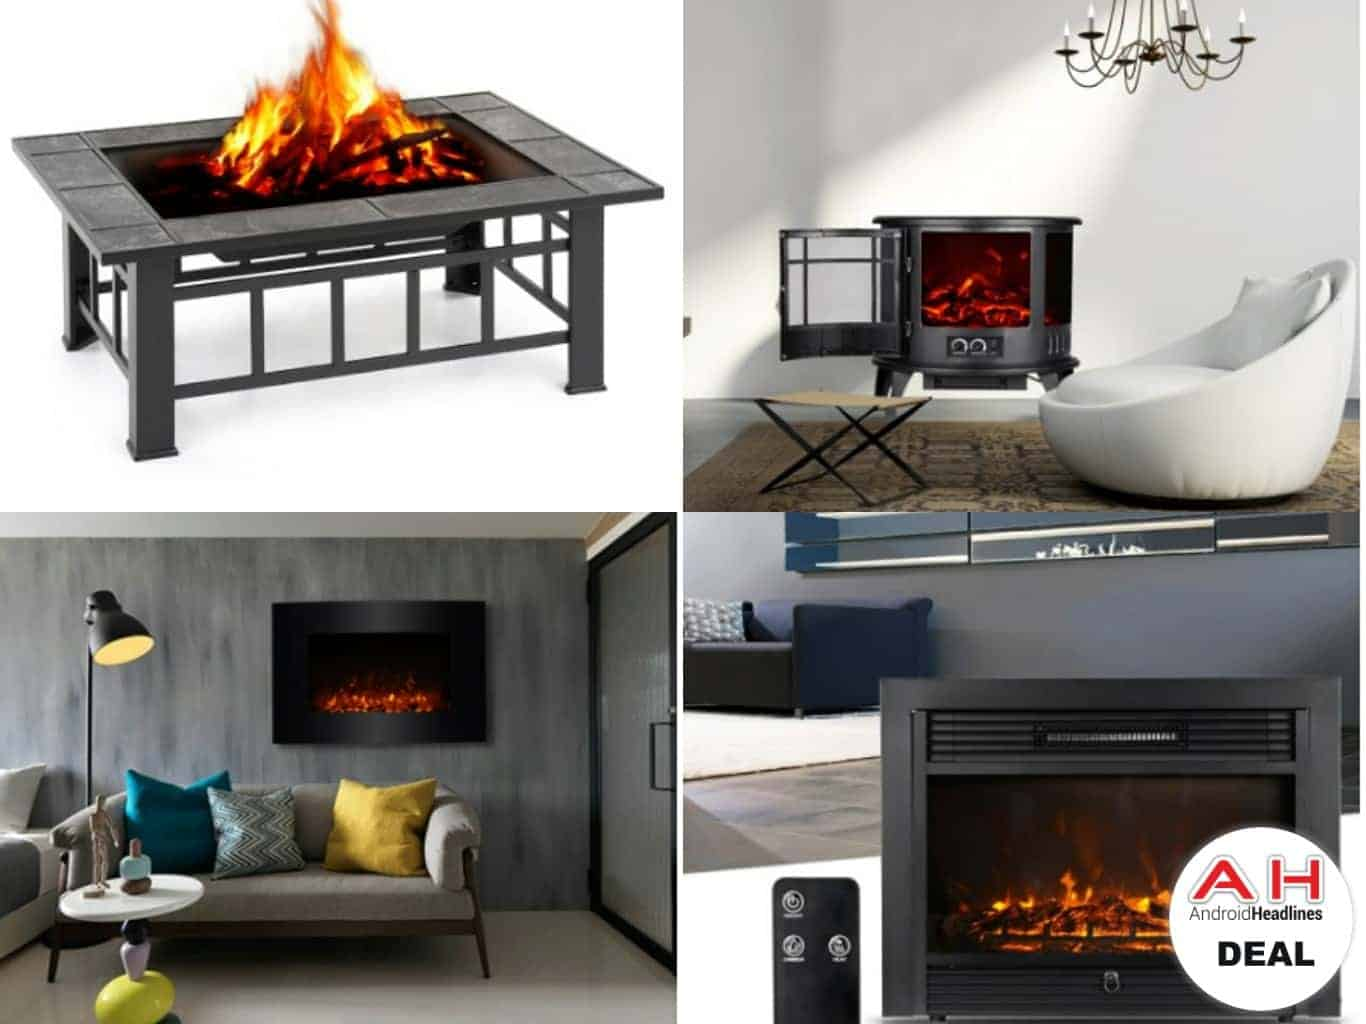 fireplaces most electric paml the white fake info for faux australia st articles fireplace realistic in on mantel sale